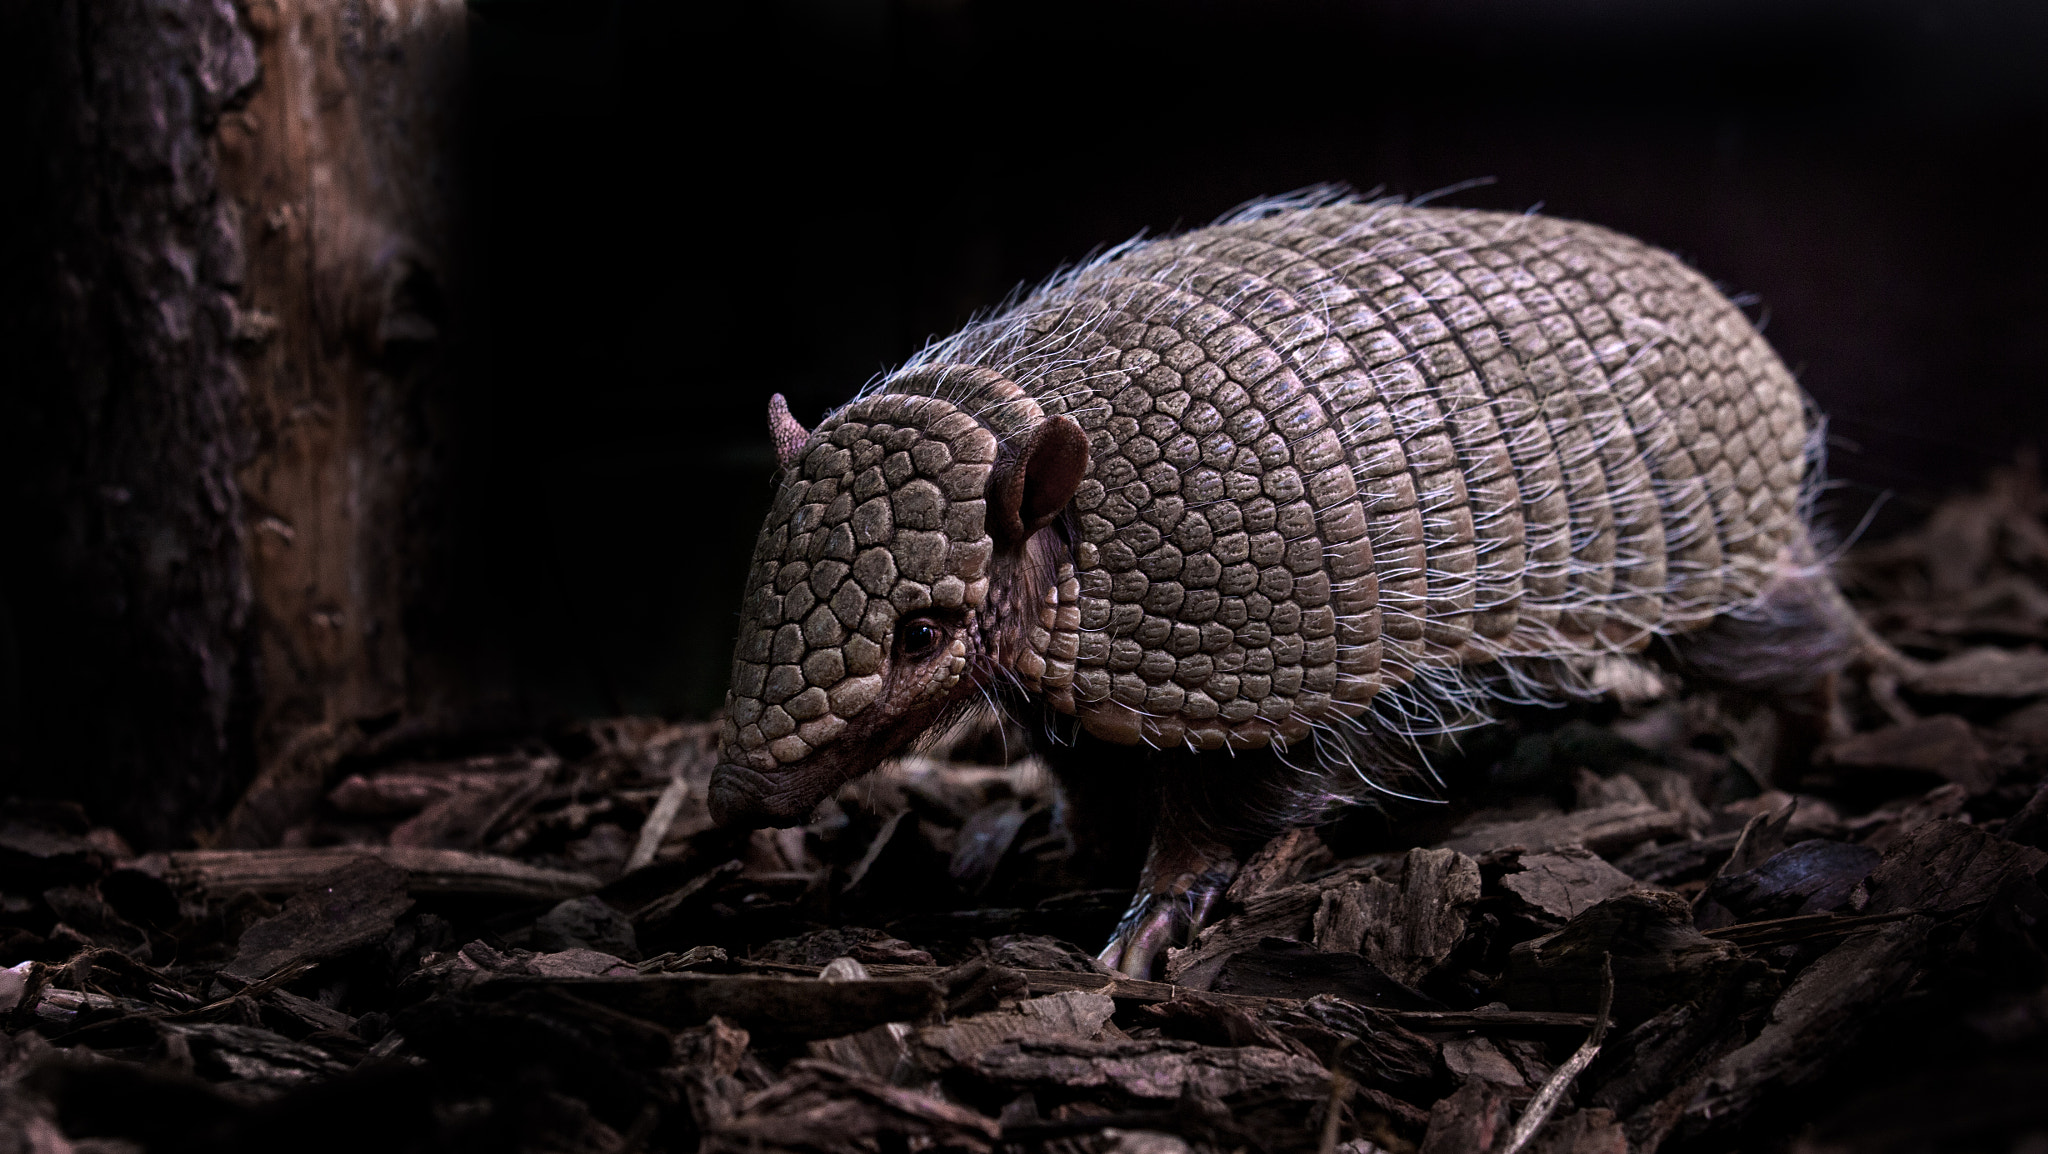 Photograph Armadillos Rule! by Sue Demetriou on 500px